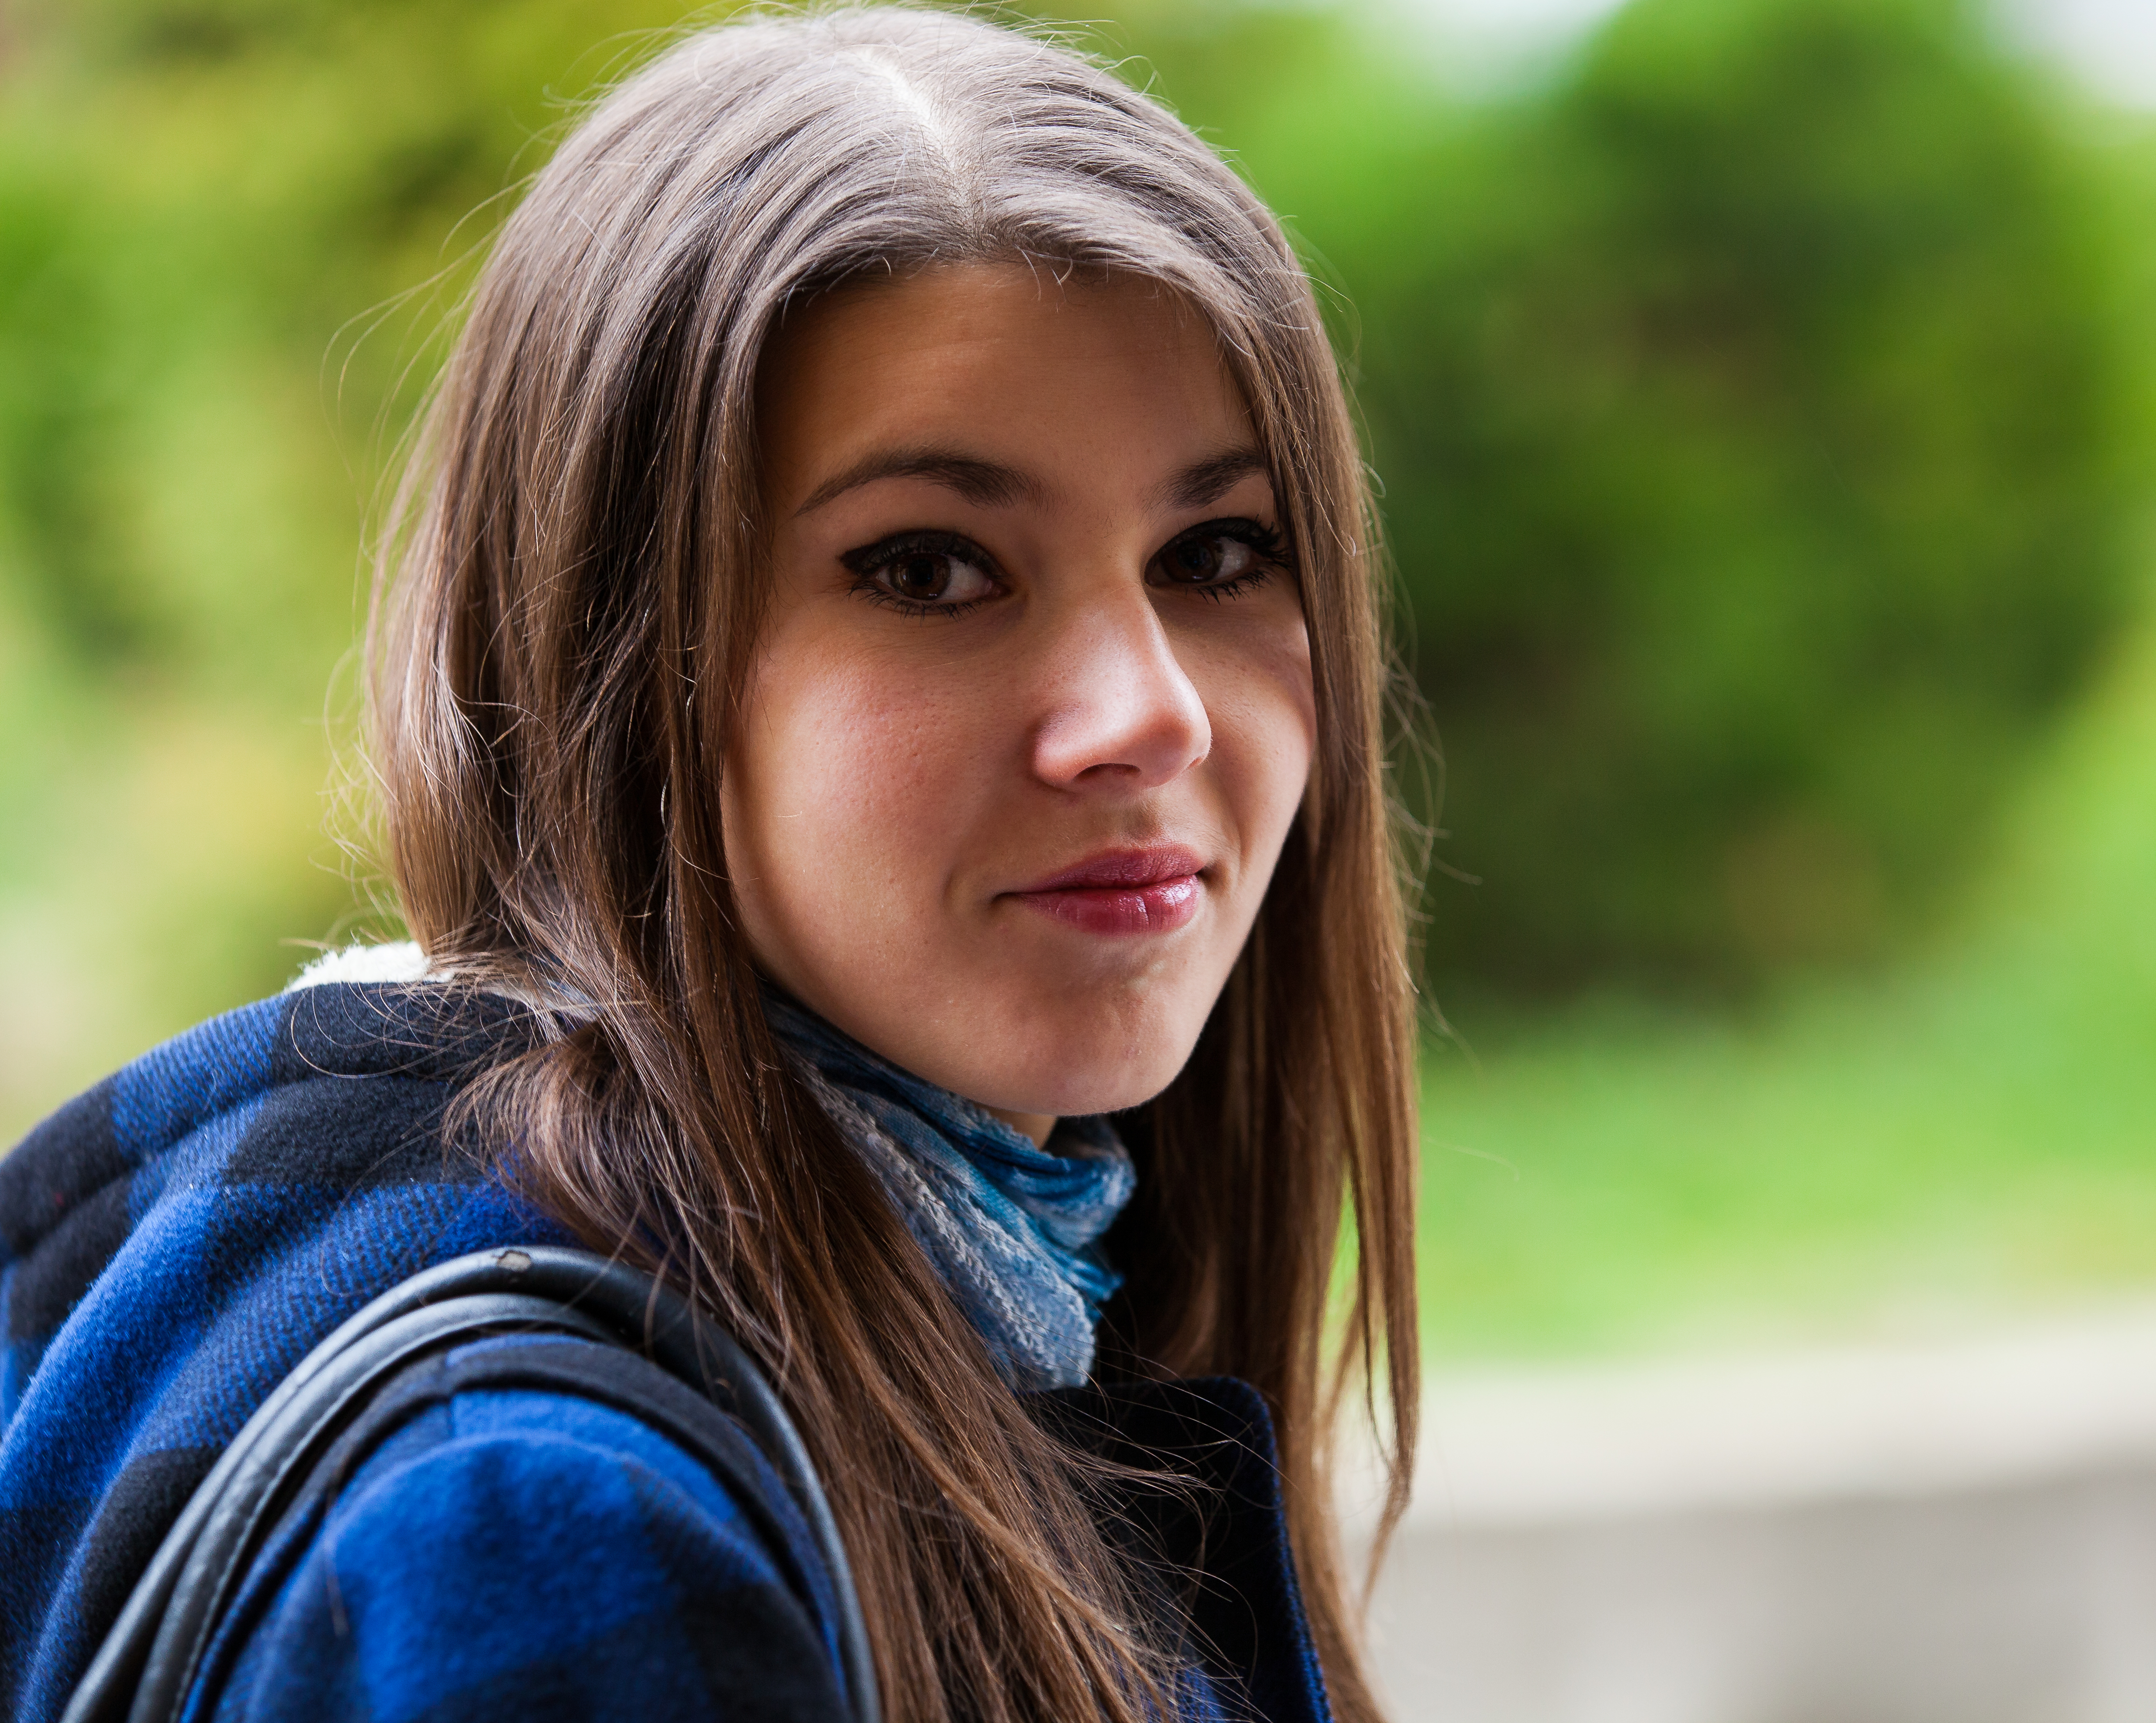 an exceptionally beautiful brunette Catholic girl photographed in November 2013, picture 18 out of 19